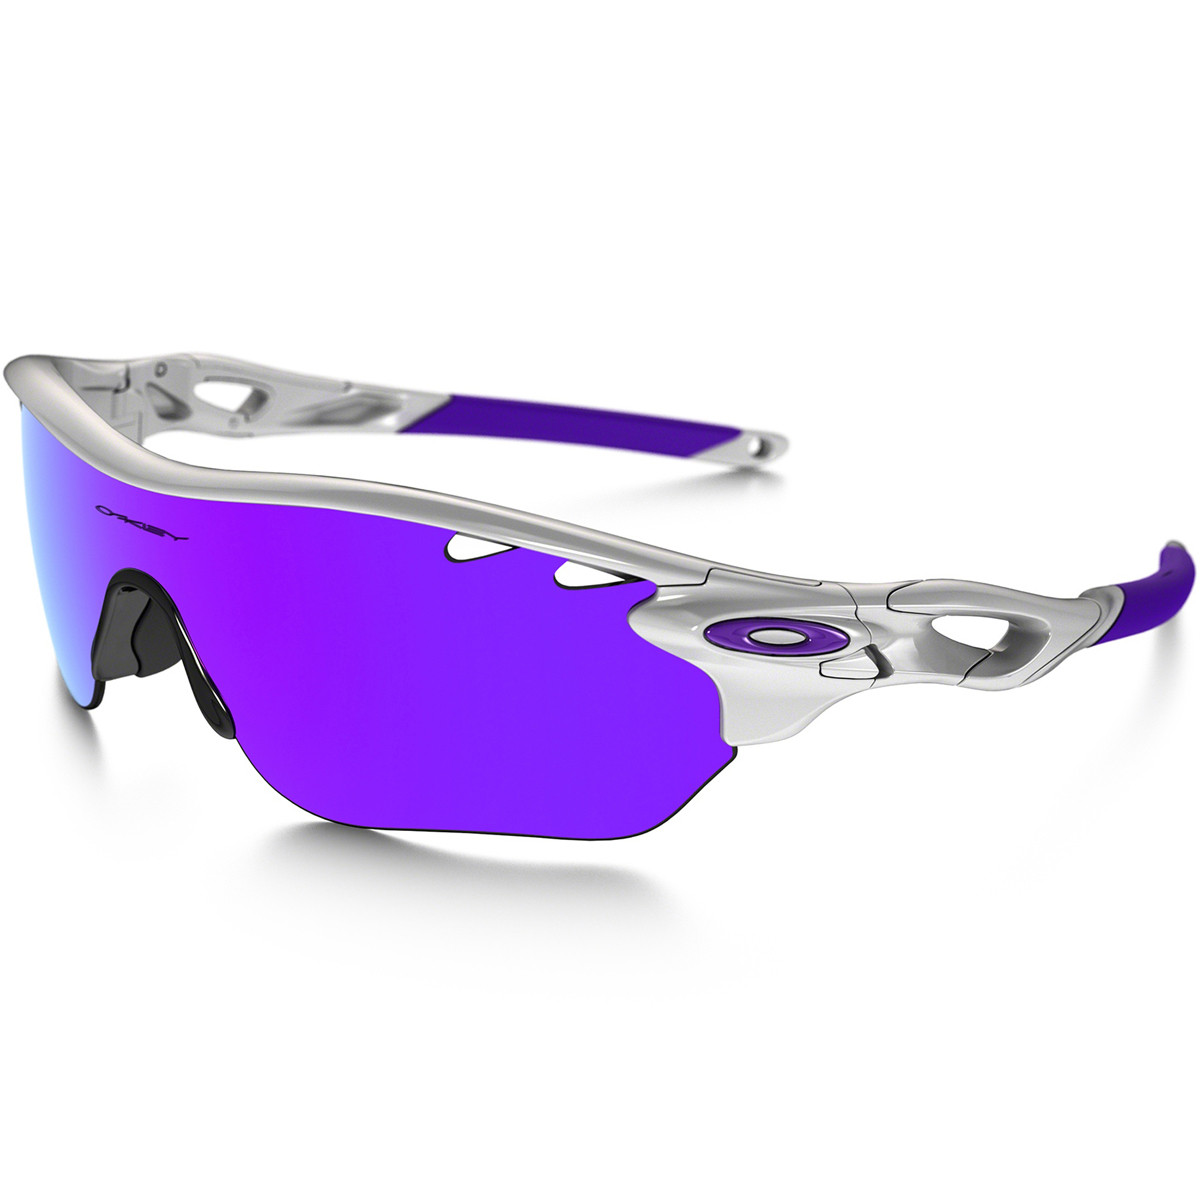 Óculos Oakley Radarlock Edge Vented Polished White Lentes Violet Iridium e  Clear VR28 45c343021d